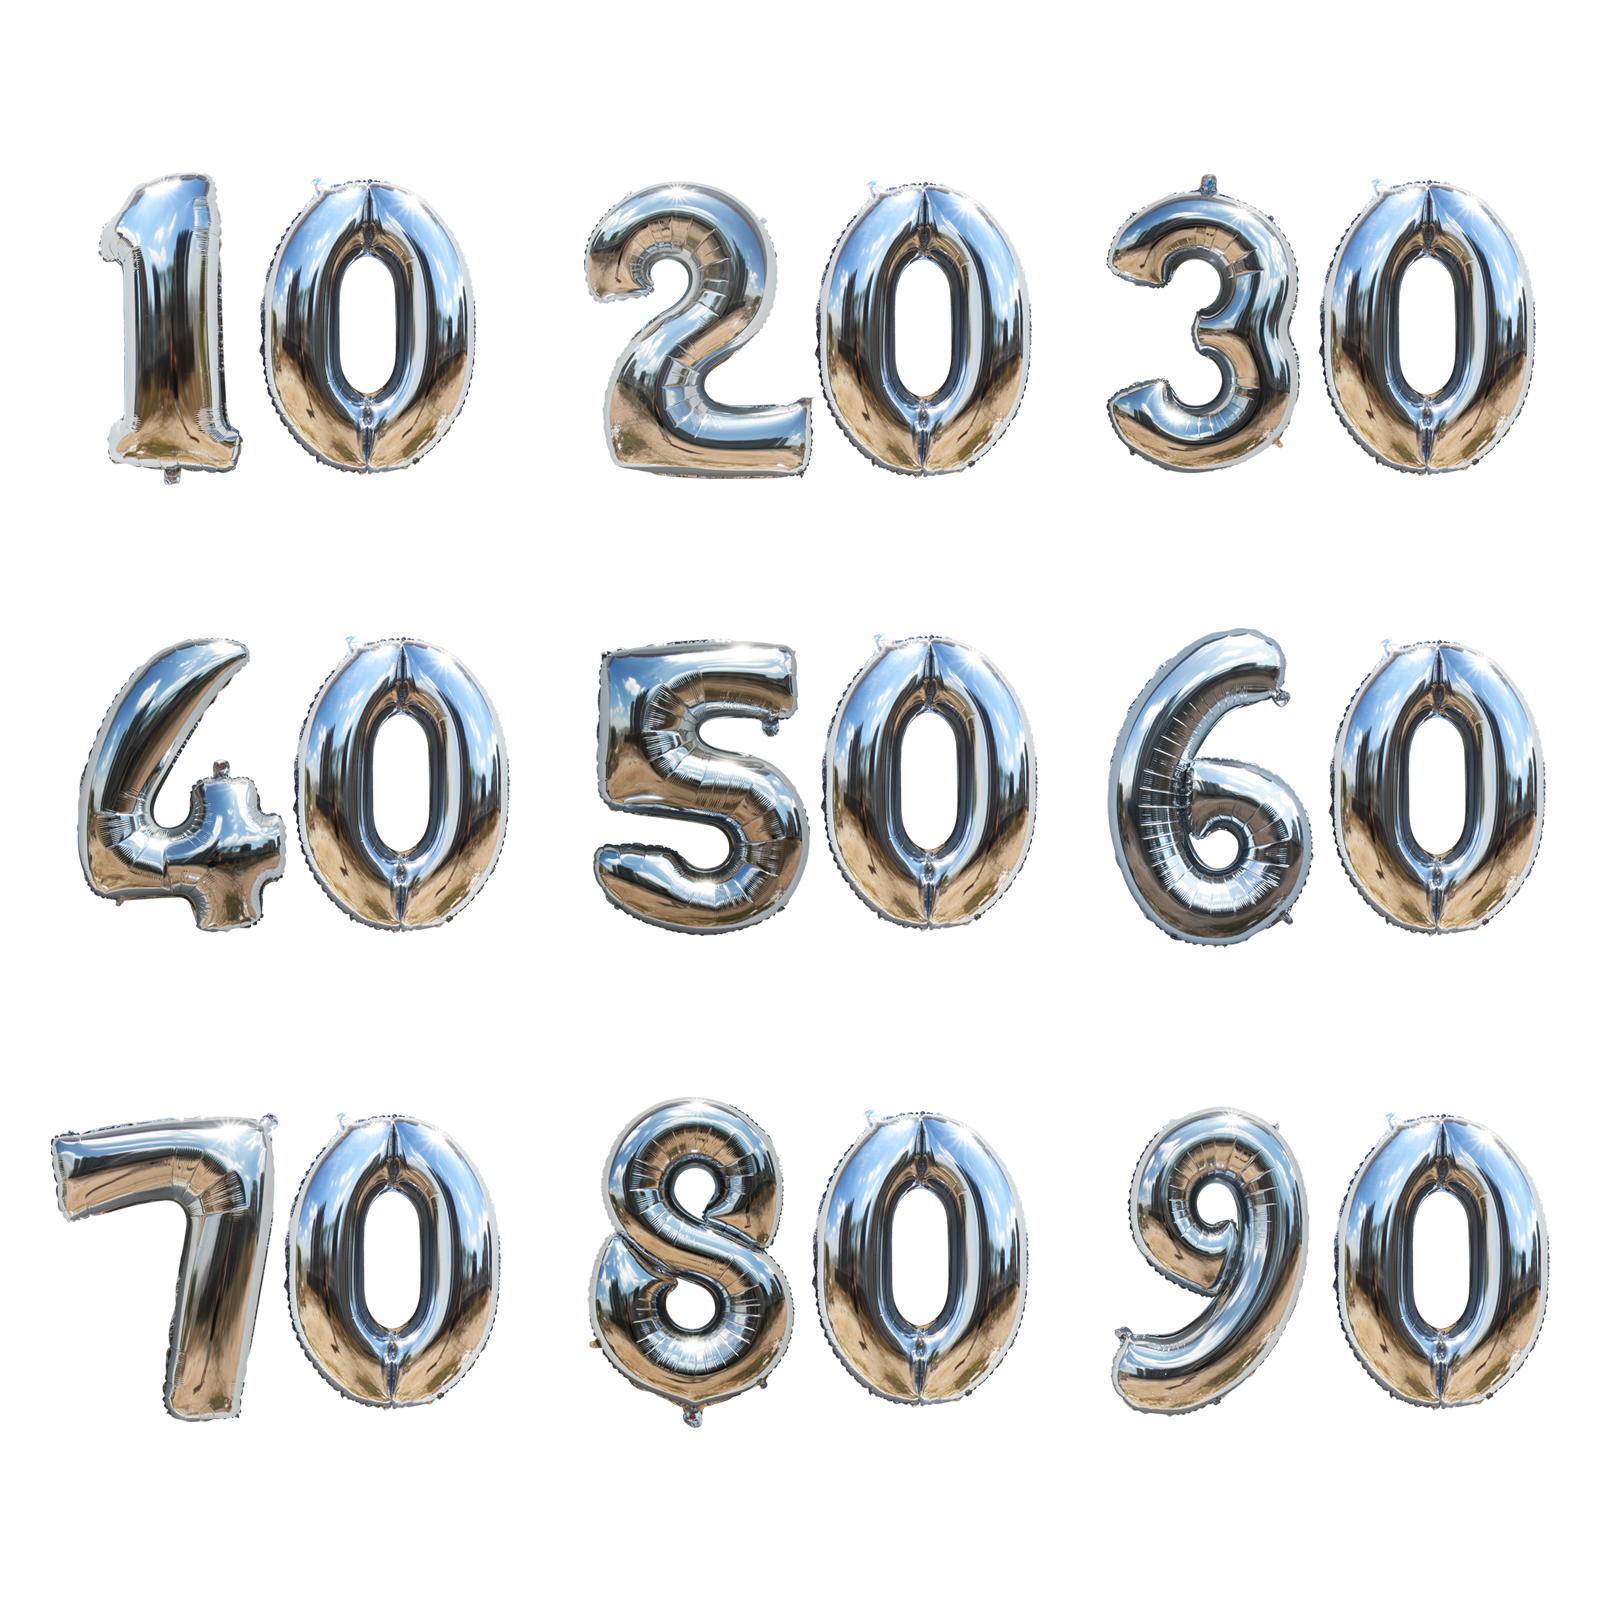 32inch Gold/Silver Number Aluminum Foil Balloons 10 20 30 40 50 60 <font><b>70</b></font> 80 90 Years Anniversary Day Balloons Party DIY <font><b>Decoration</b></font> image